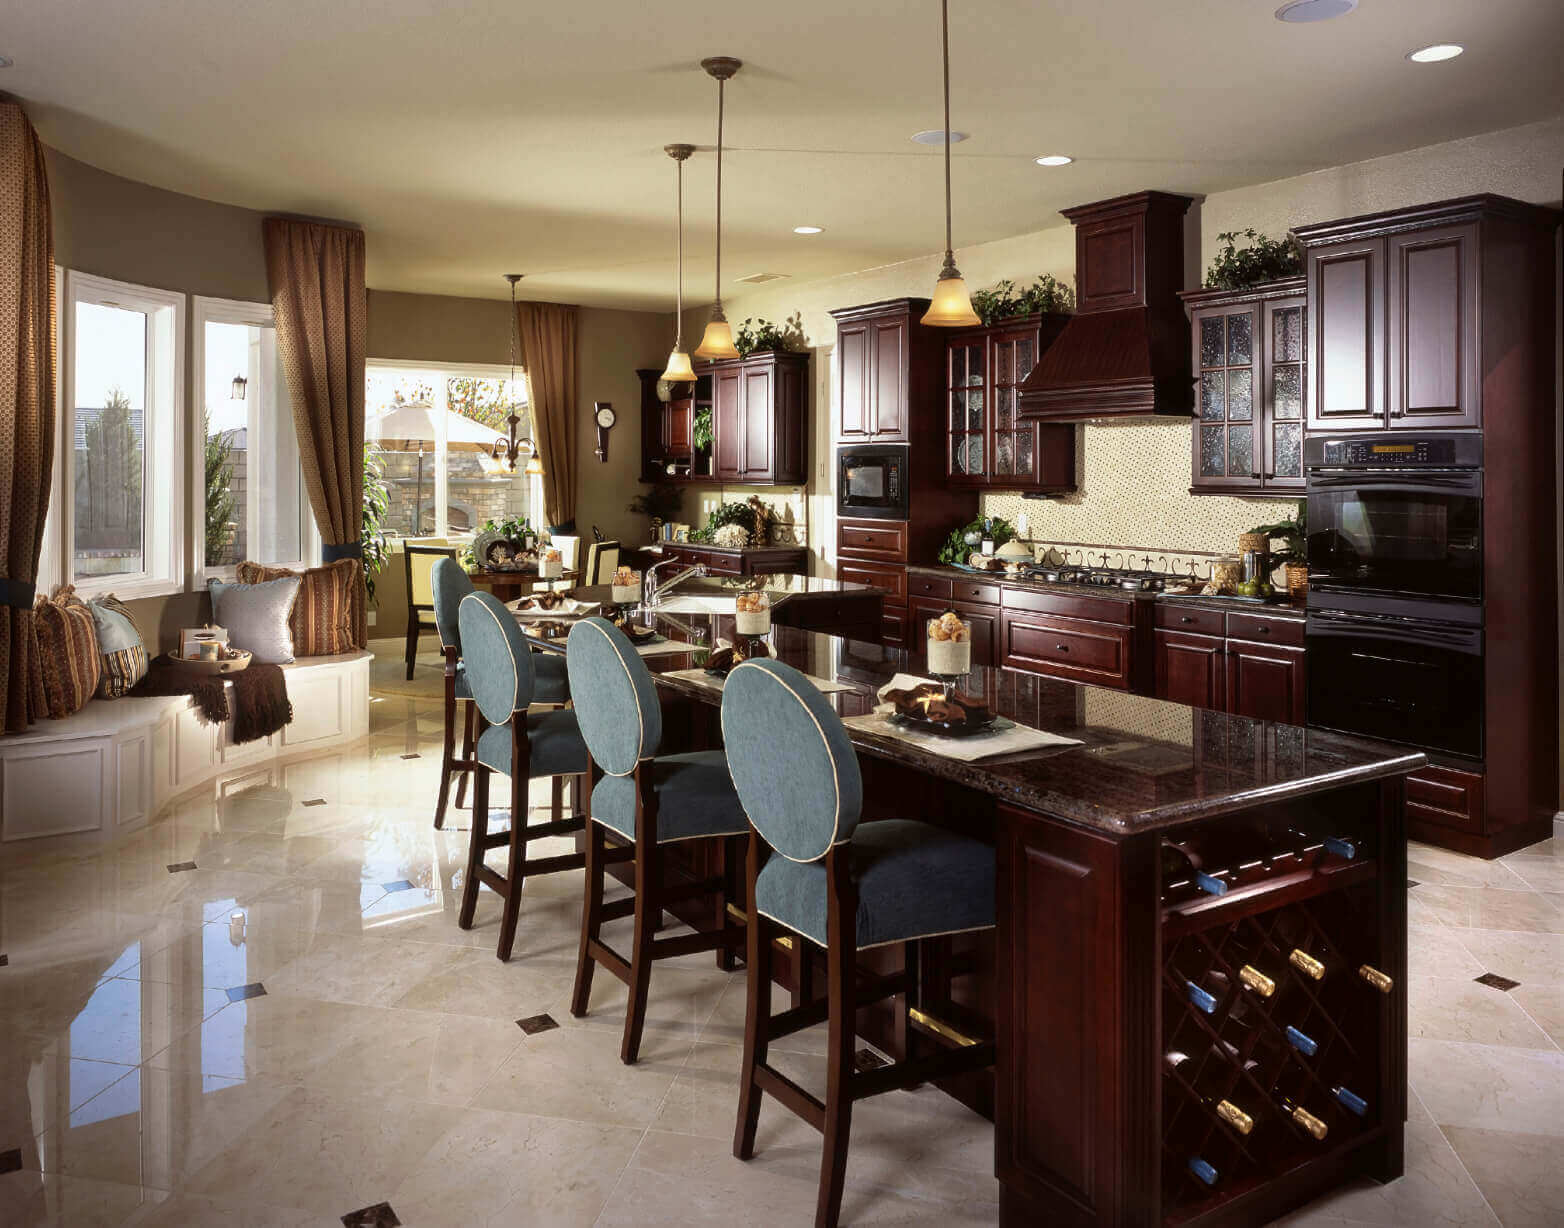 This expansive kitchen island with wine rack features a built–in sink and a broad dark marble countertop. It houses plenty of in–kitchen dining space on the marble countertop and a large wine rack